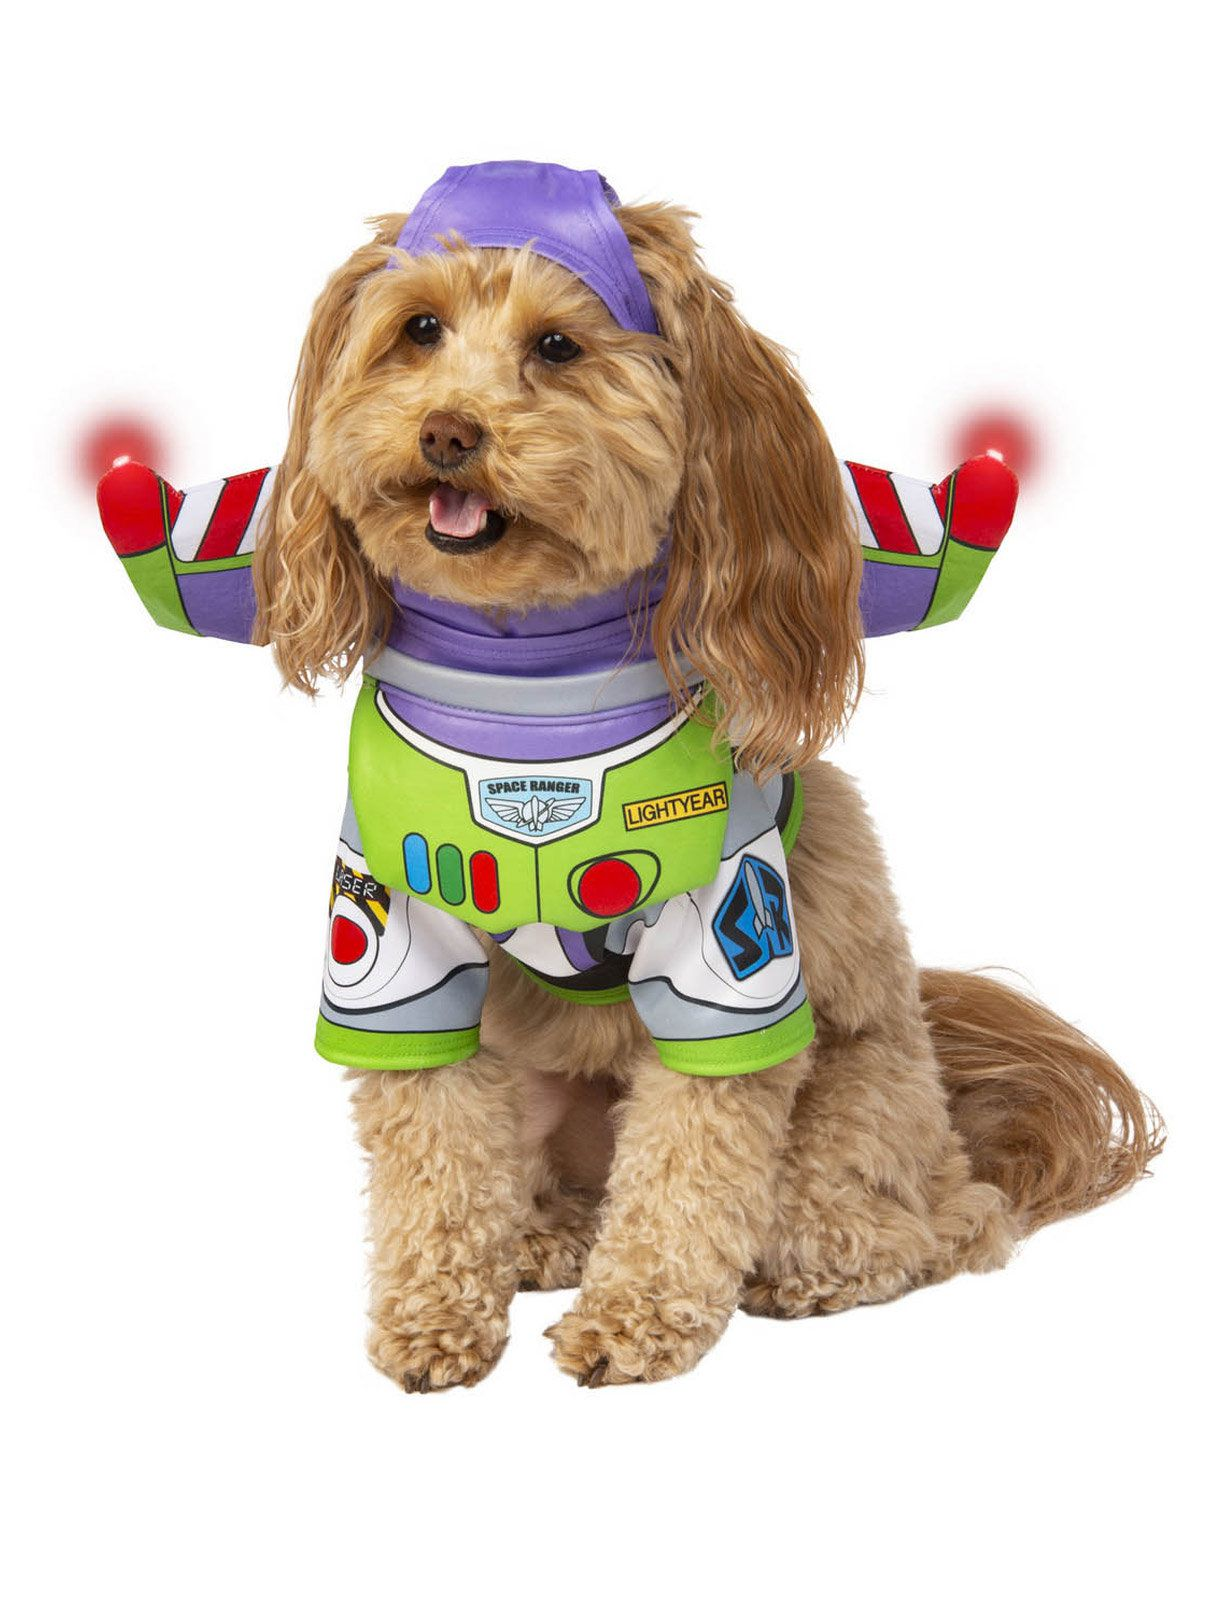 Disney Toy Story Buzz Lightyear Pet Costume - Dog and Cat Costumes